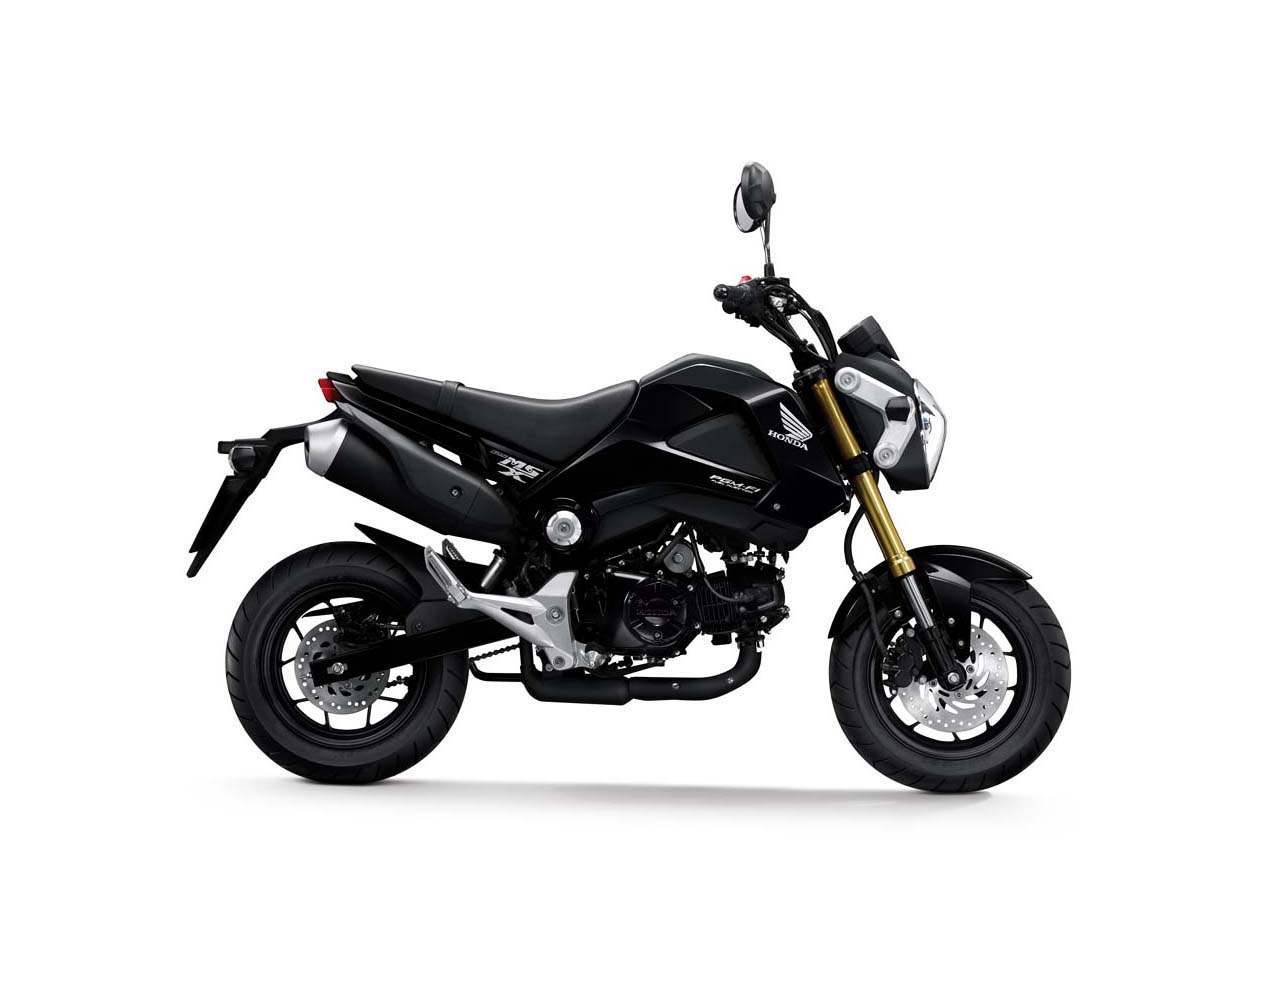 Honda grom archives the truth about cars for Honda grom mpg